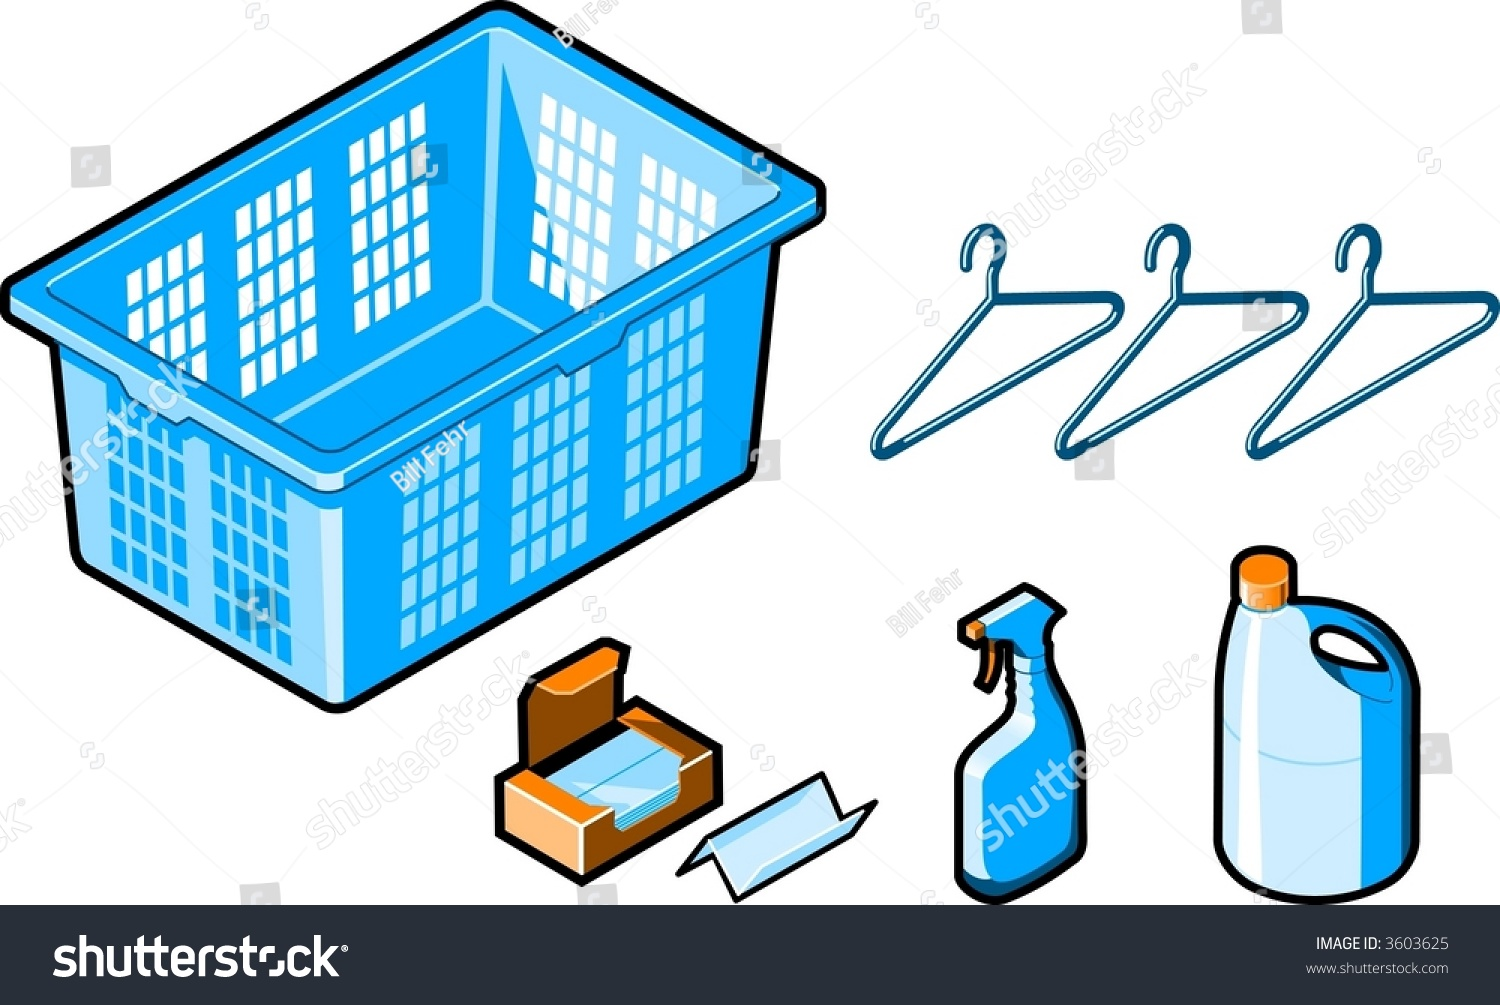 Laundry Room Items Laundry Room Items Stock Vector 3603625  Shutterstock